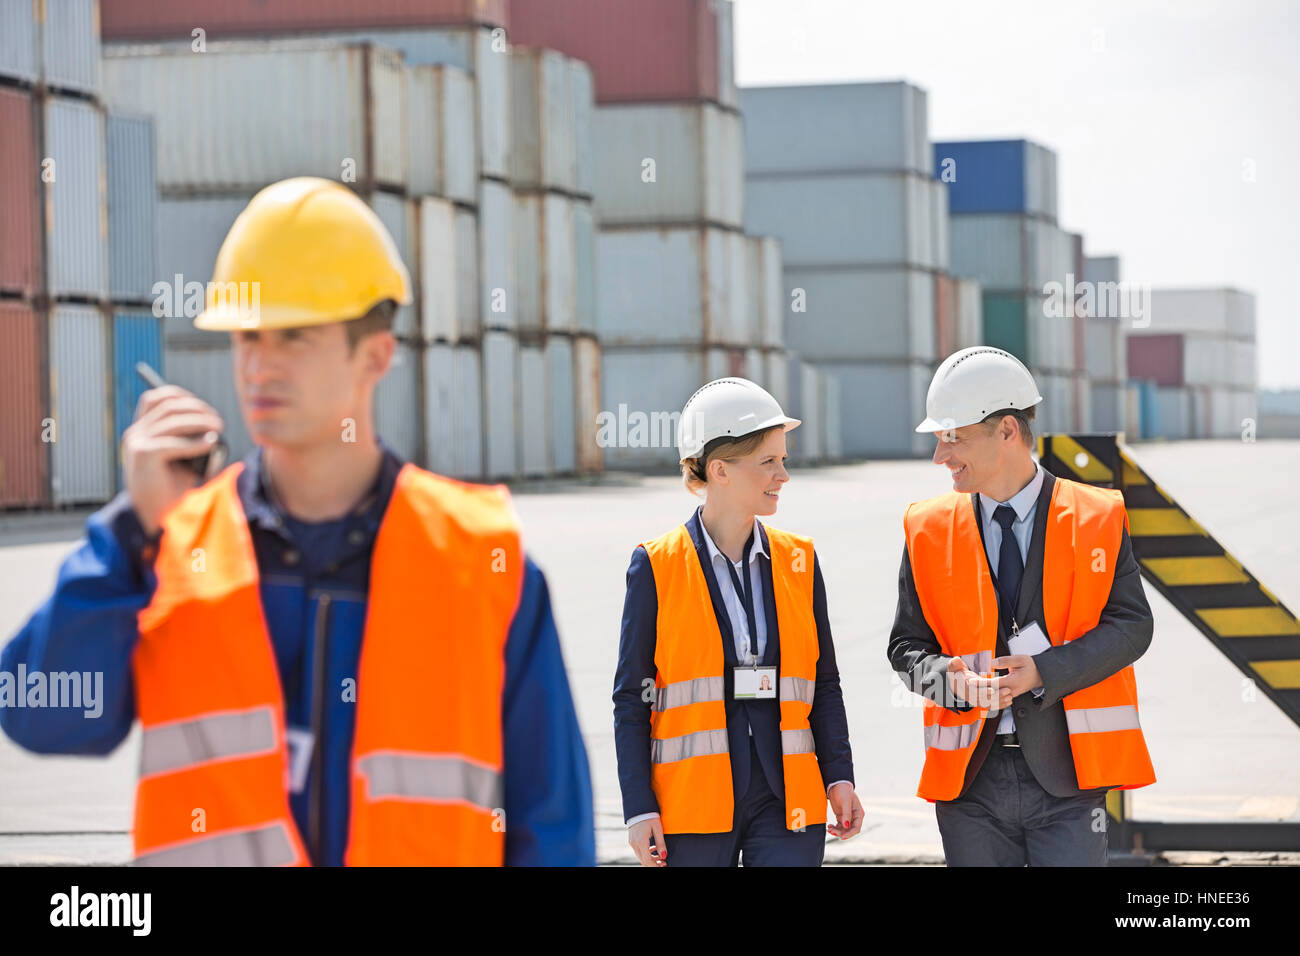 Worker using walkie-talkie while colleagues discussing in shipping yard - Stock Image